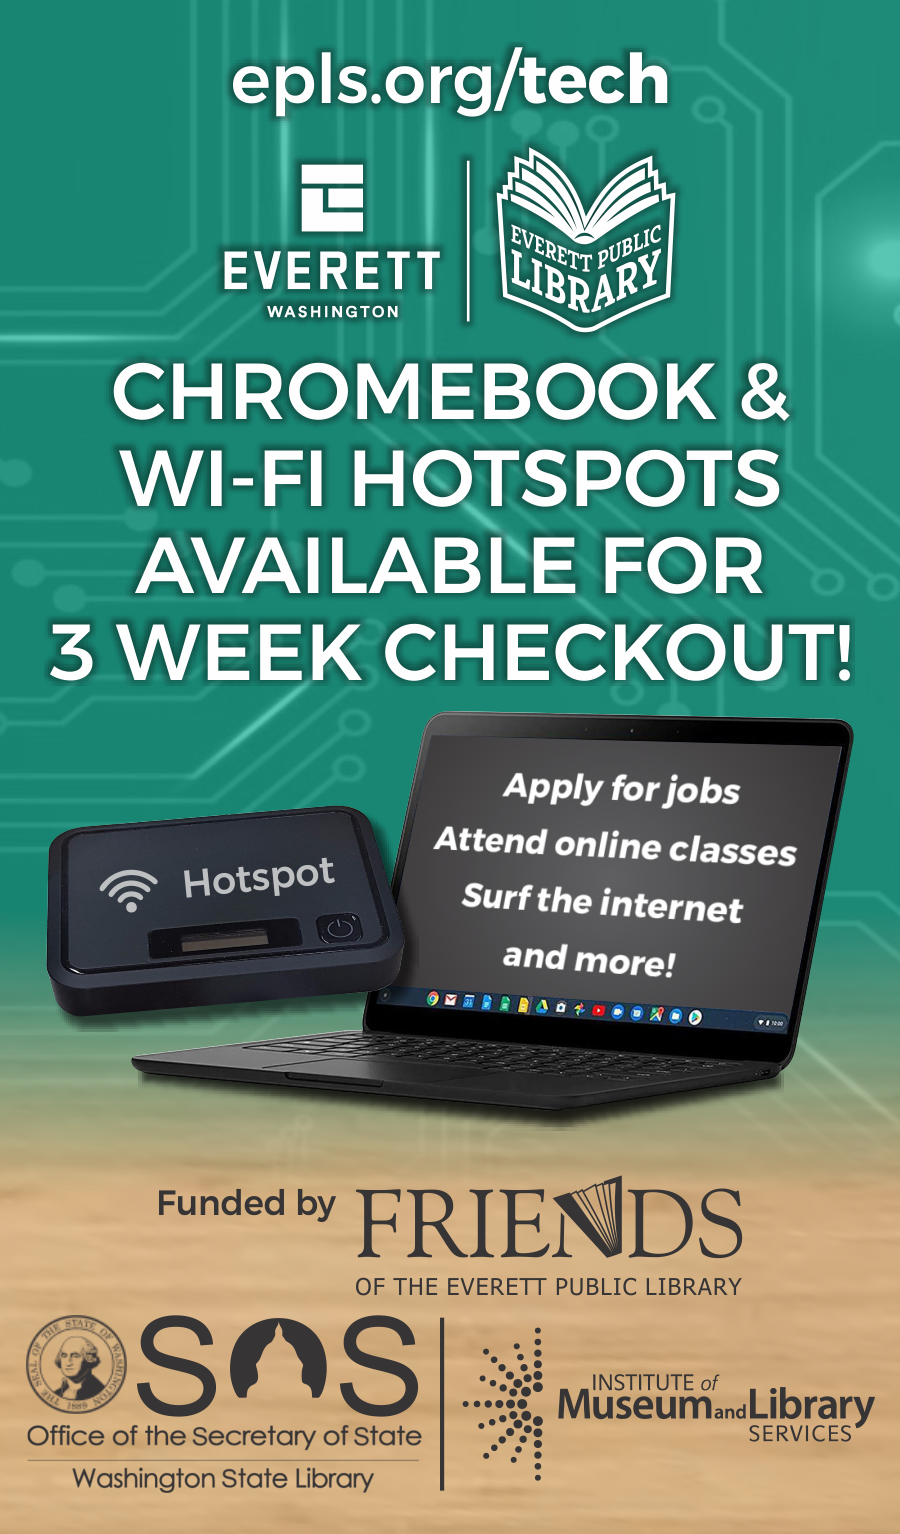 The Library has Chromebooks and Hotspots available for checkout.